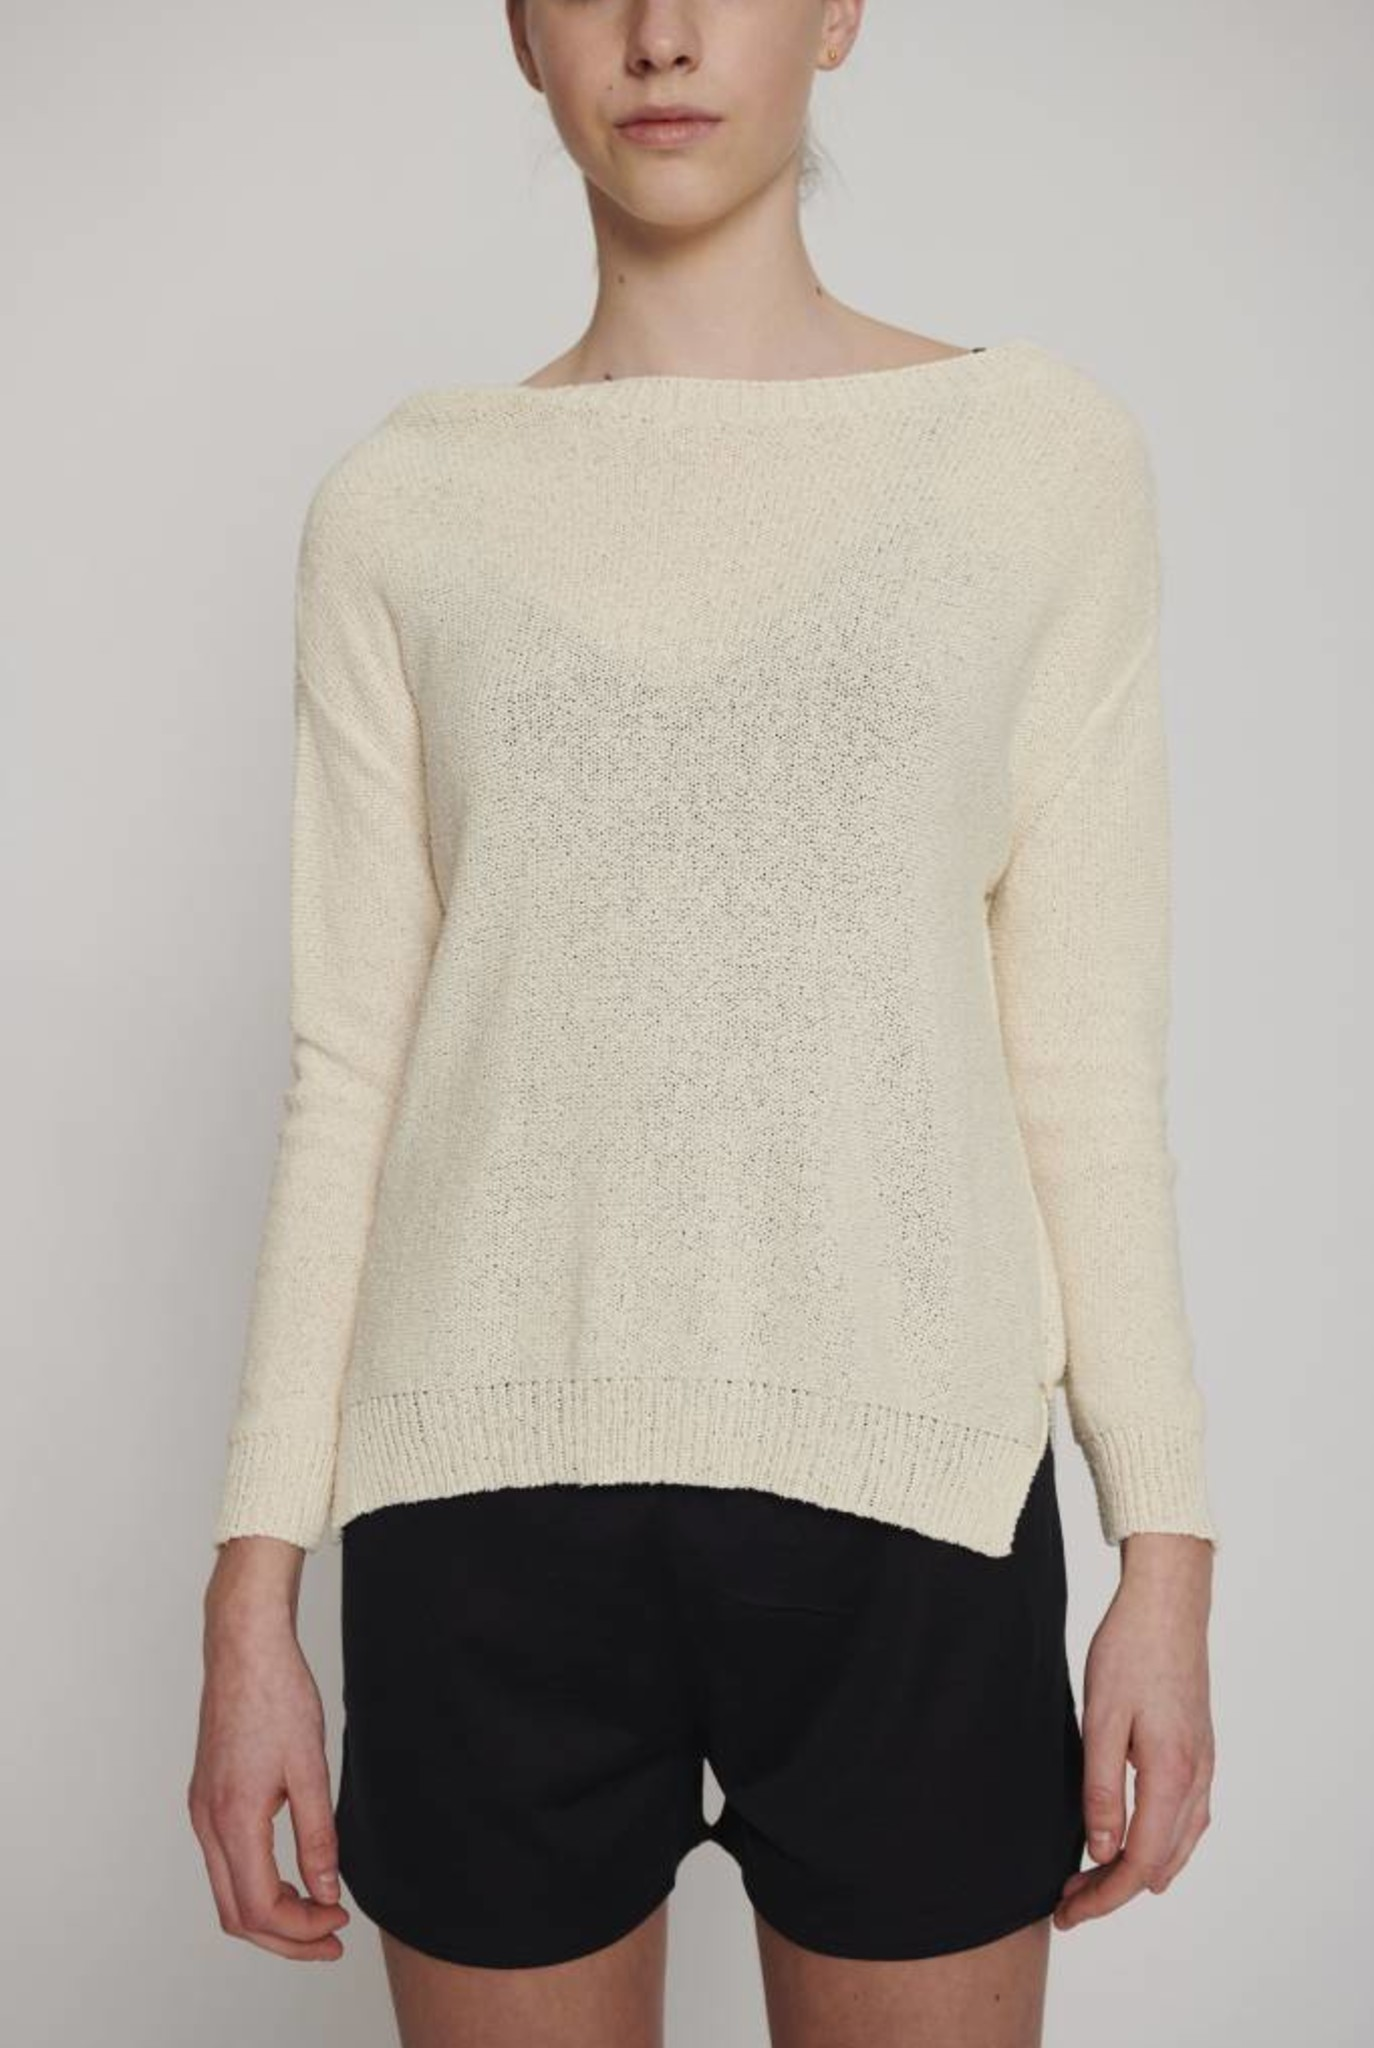 crocheted sweater creme